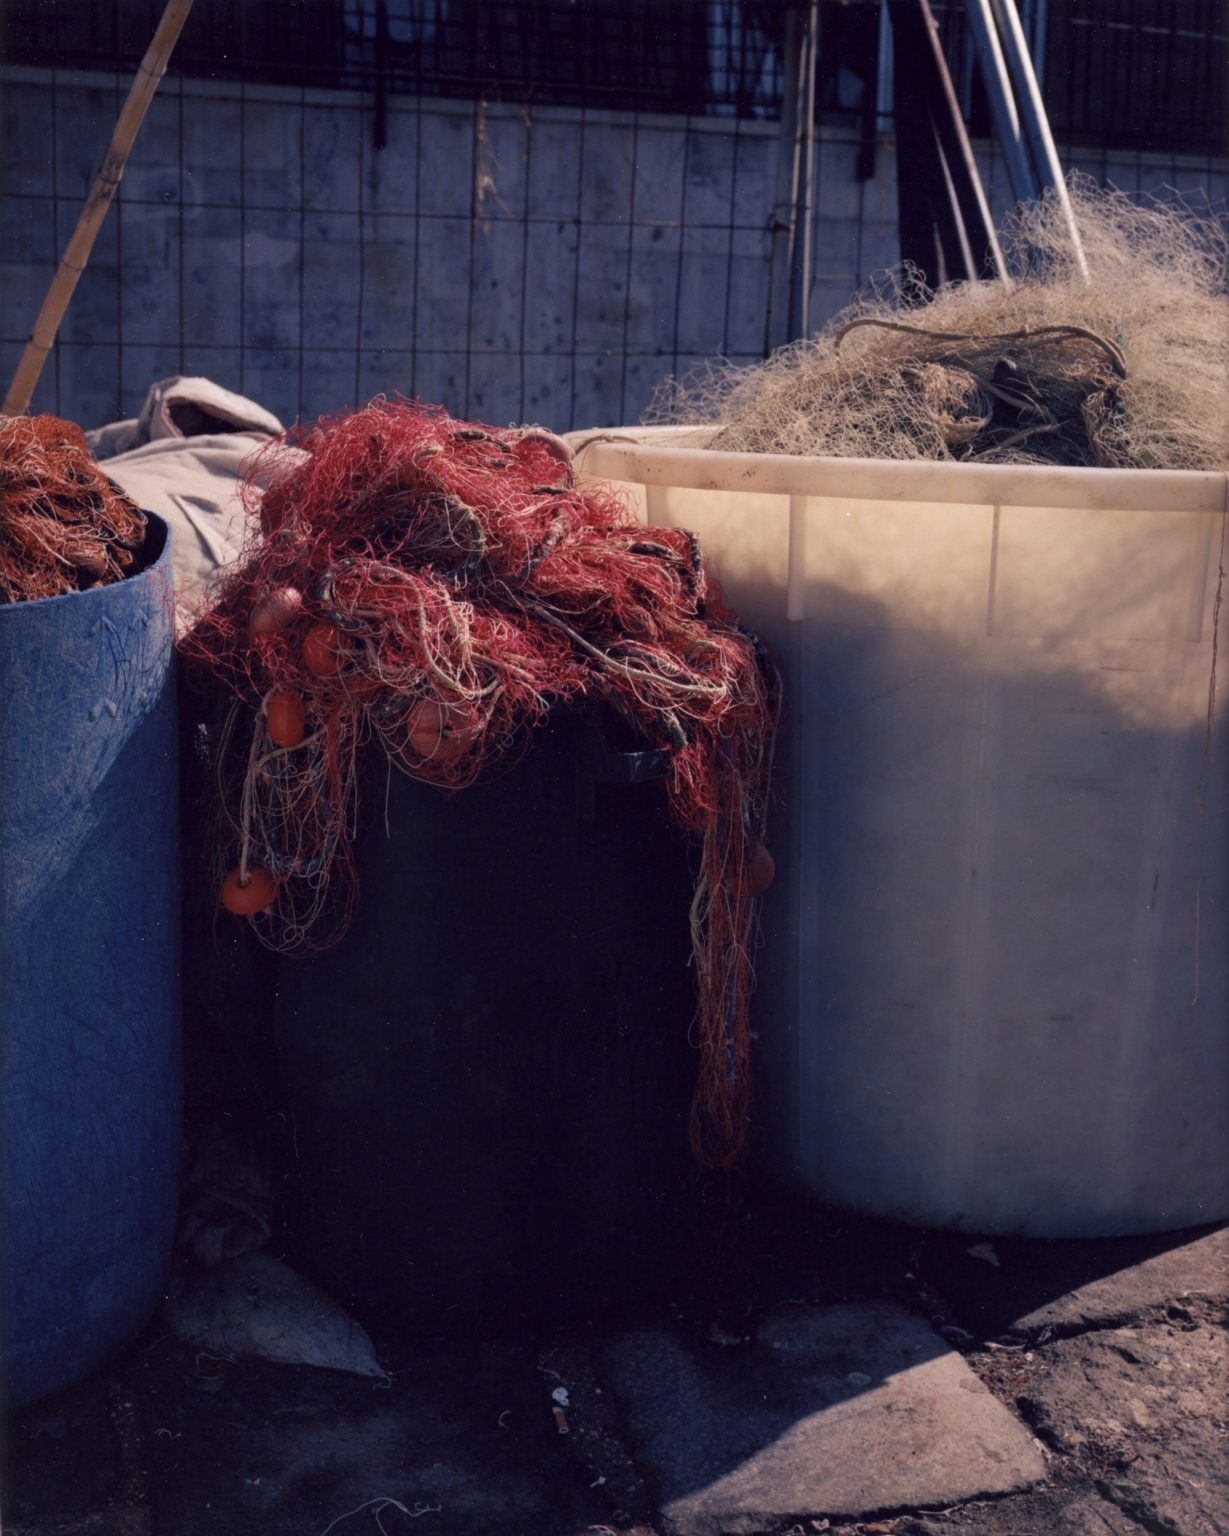 Fishing nets at the port. Province of Naples, 2020